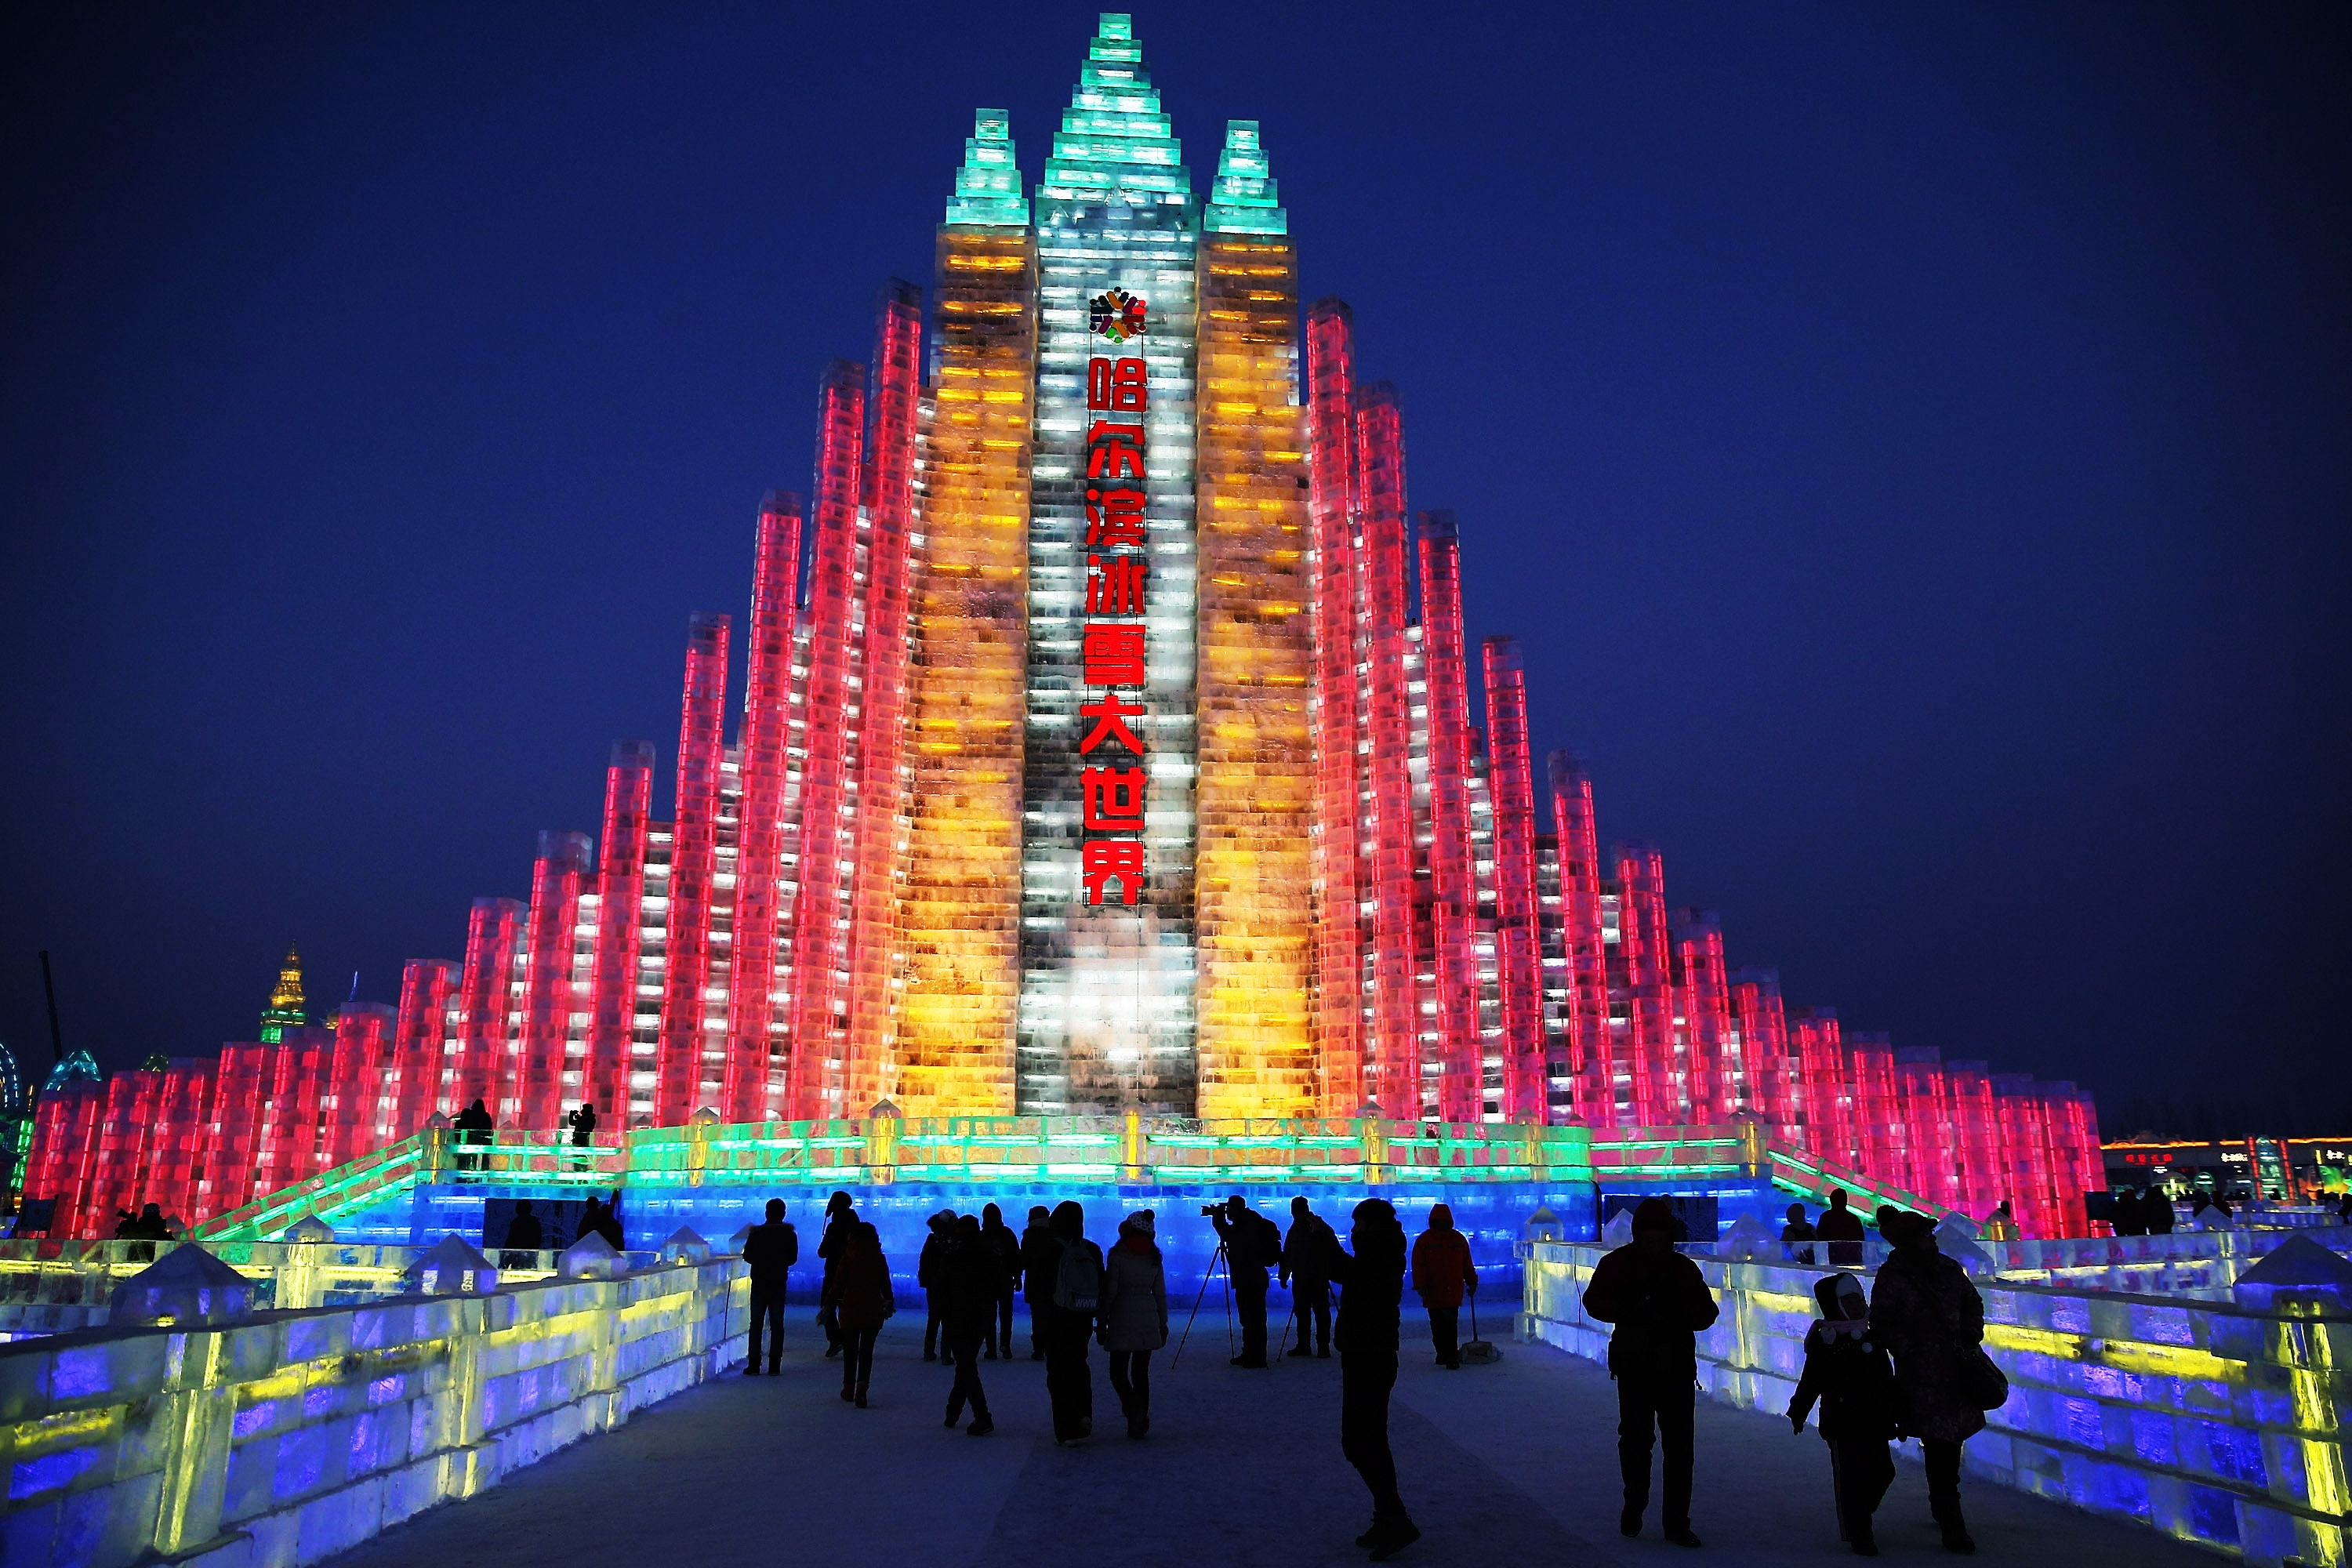 Ice and snow festival in China brings winter wonderland to life